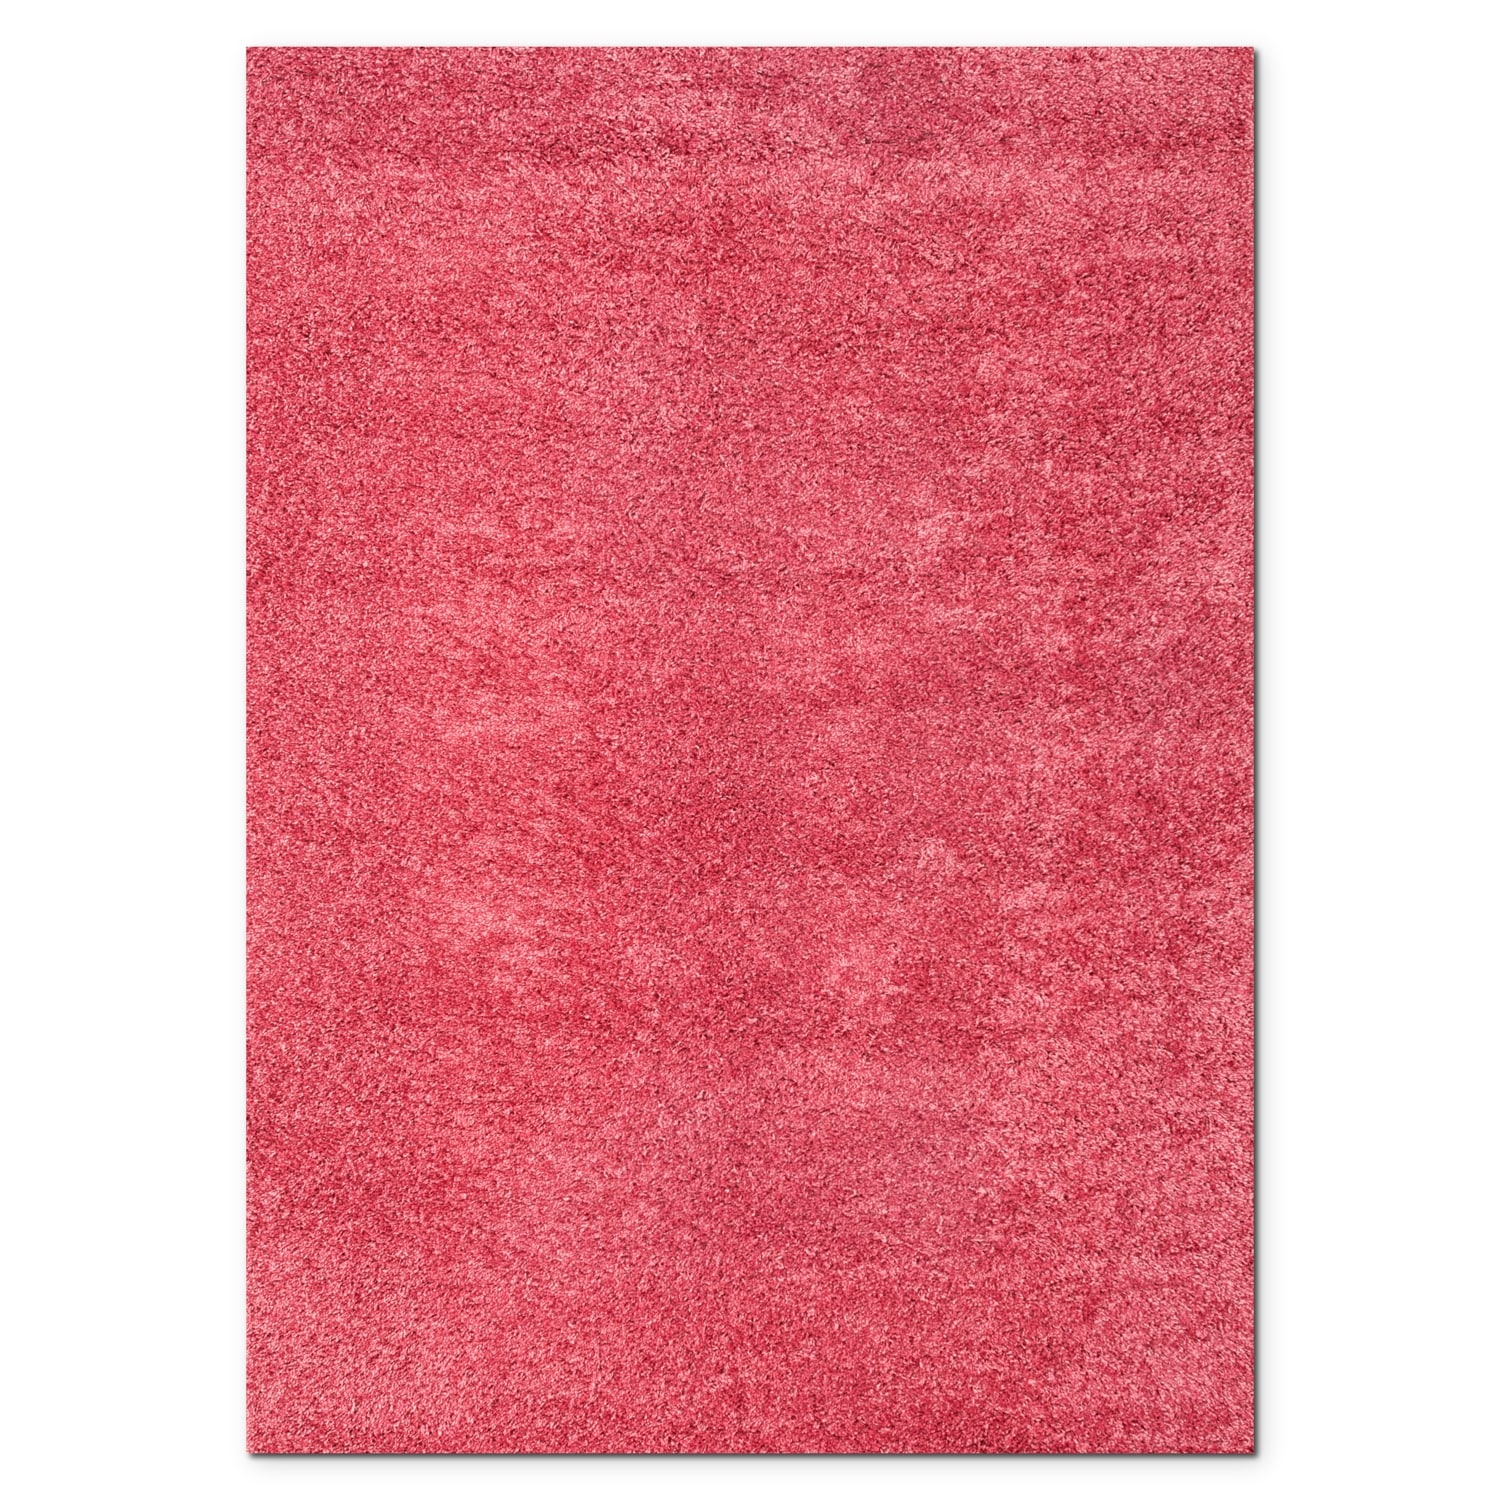 Domino Pink Shag Area Rug 5 39 X 8 39 Value City Furniture